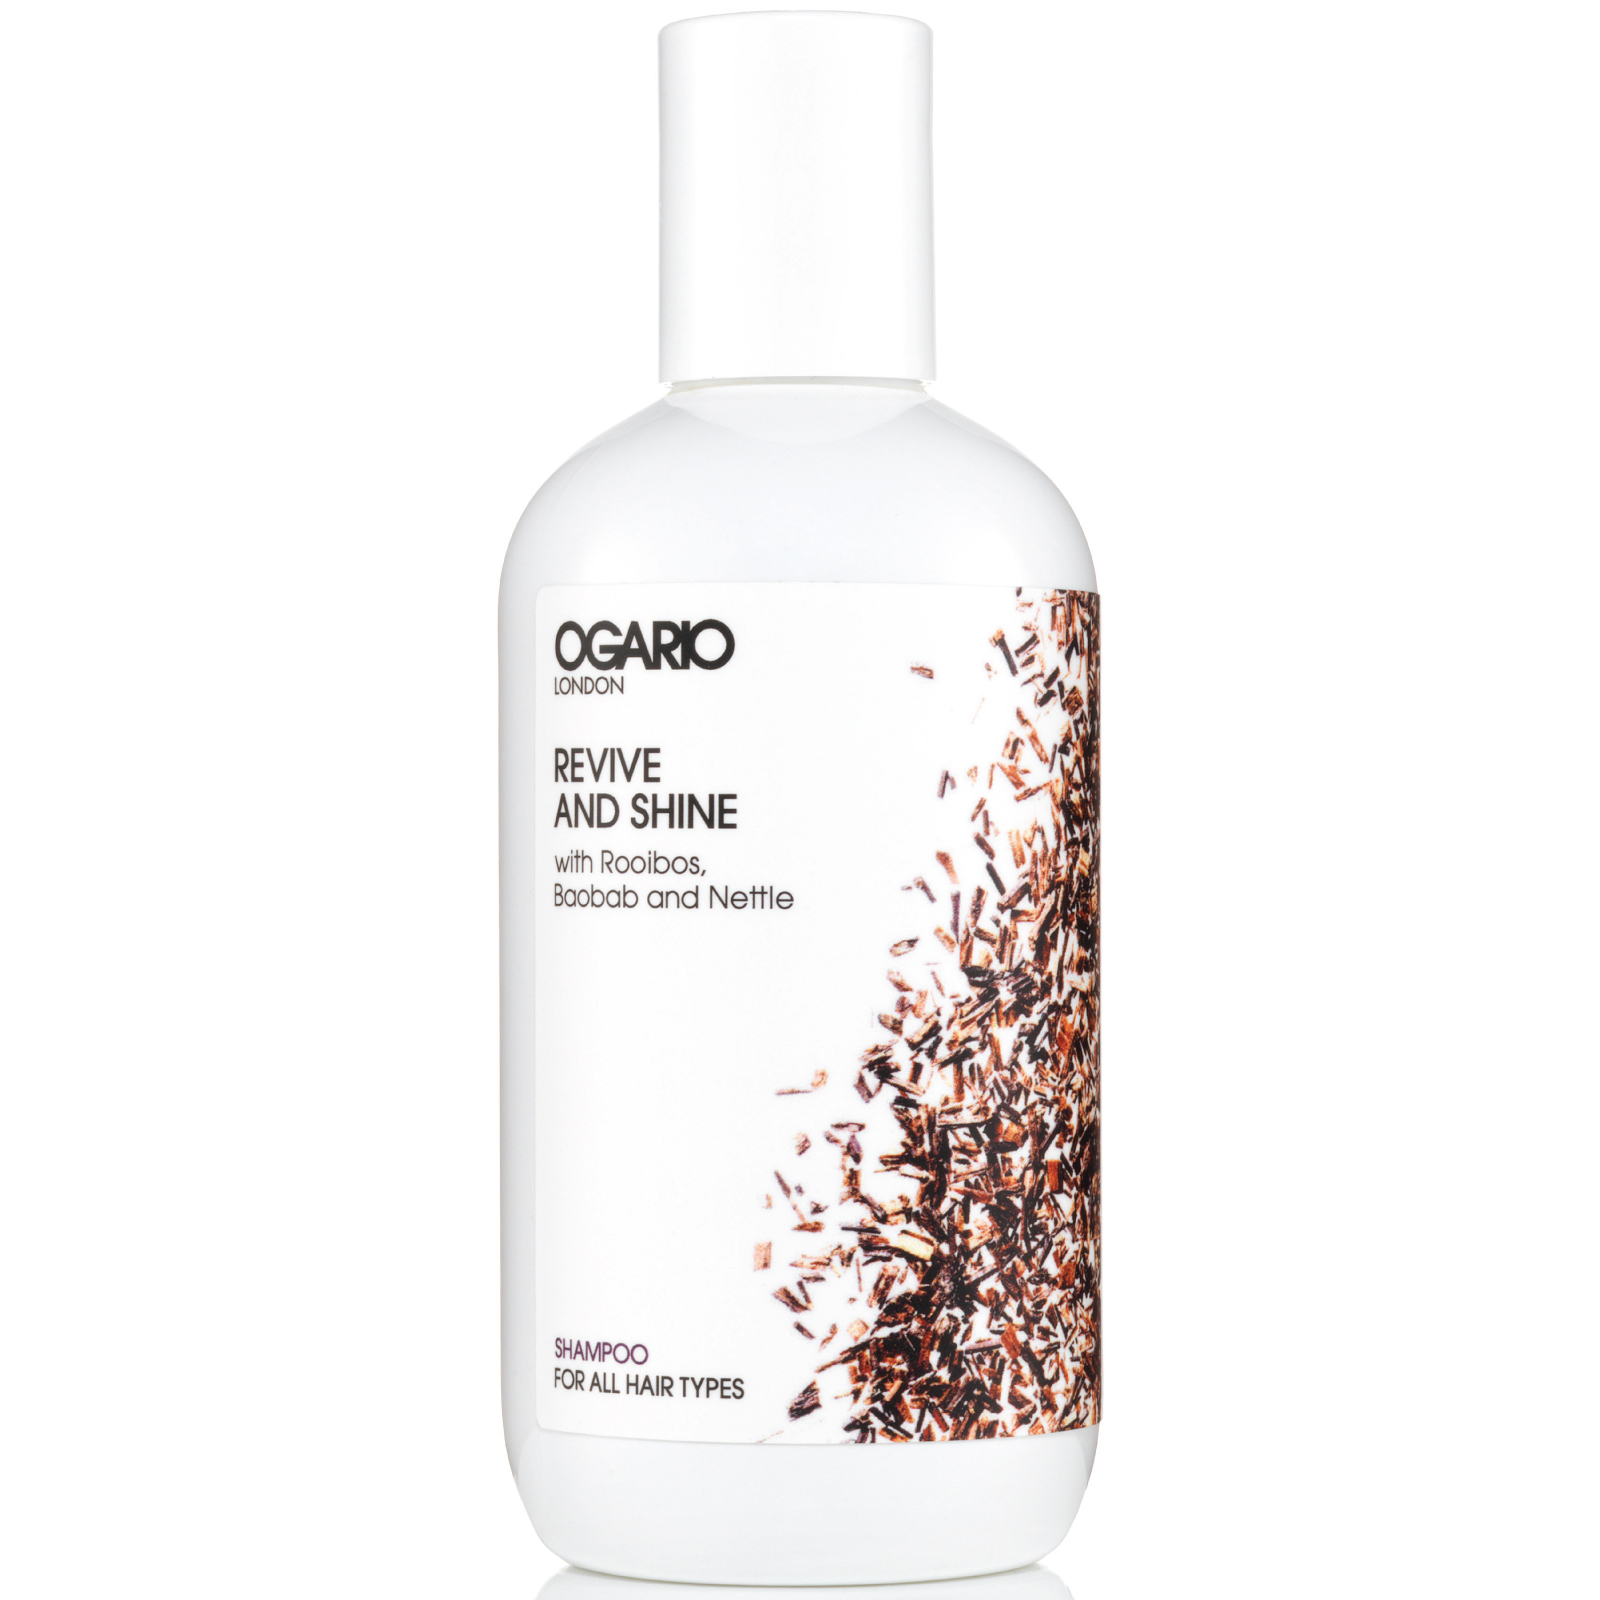 OGARIO Revive and Shine Shampoo for all hair types; prep fine hair for styling, adds volume